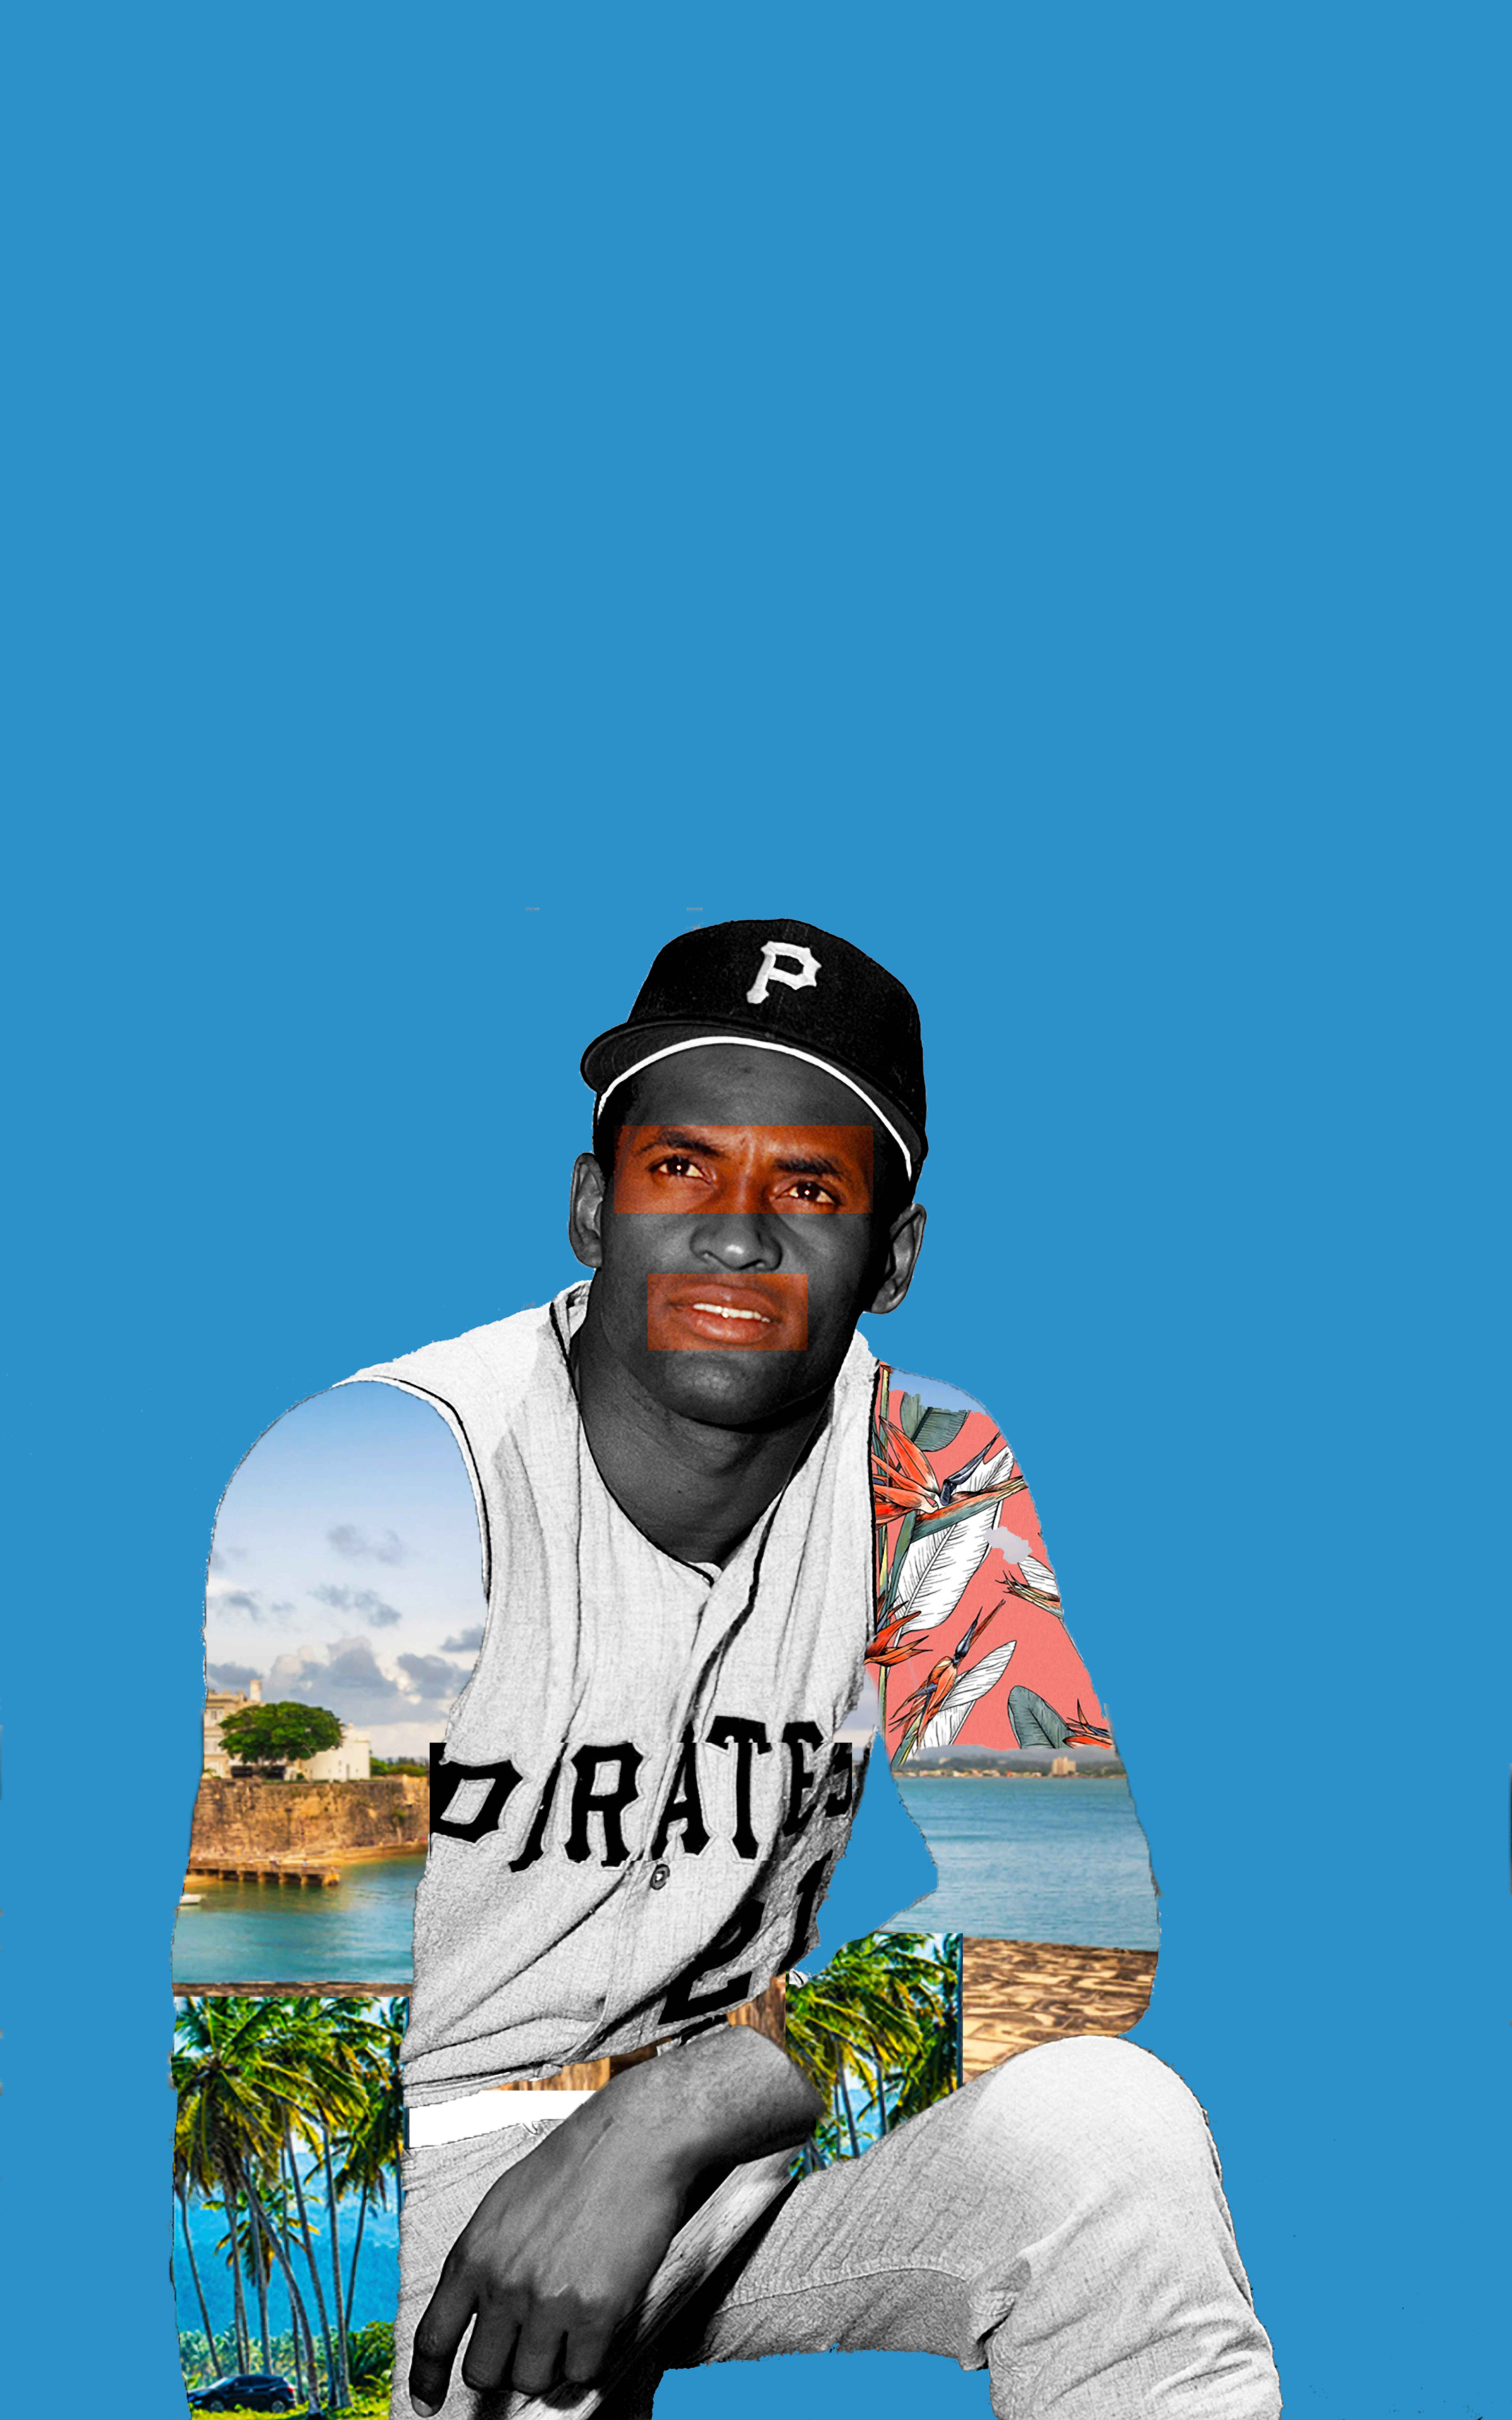 Image of Roberto Clemente for the Downtown Renown project